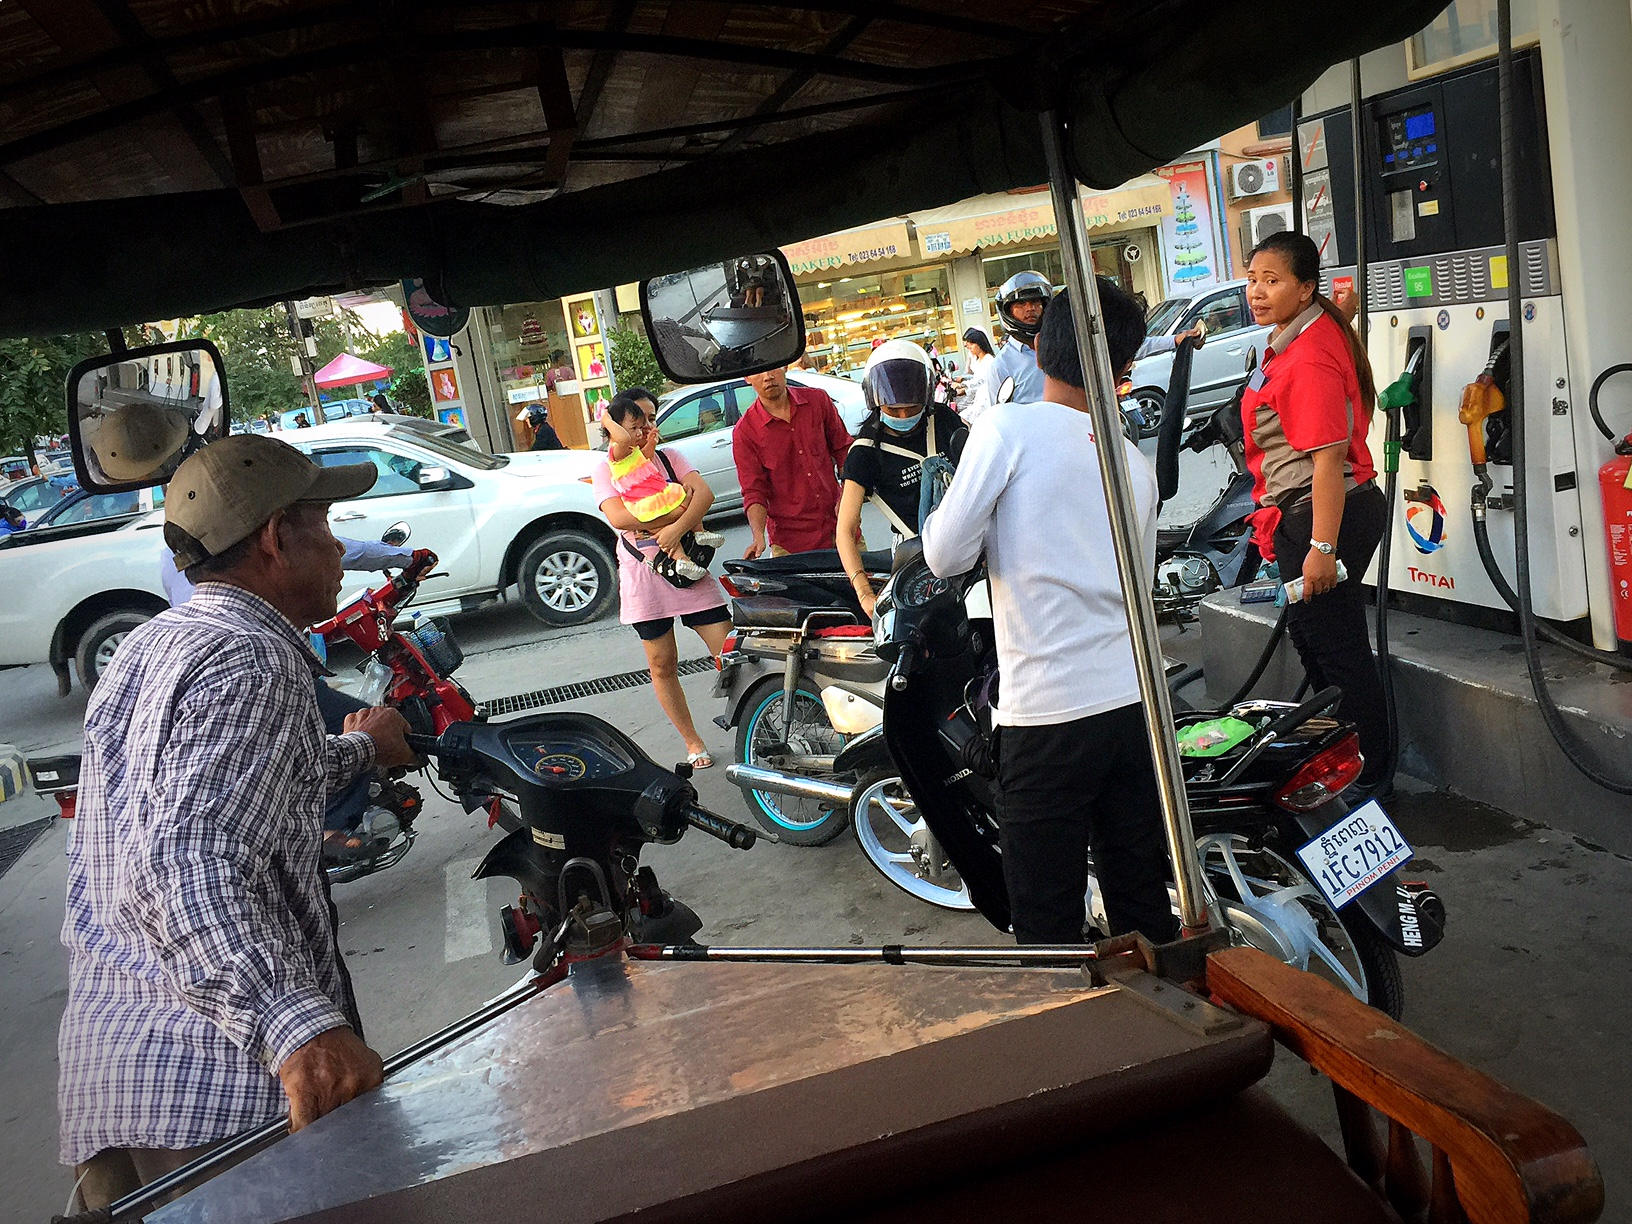 What the fouf? Why is my driver dragging his tuk tuk through the gas station? He never stopped to actually get gas.